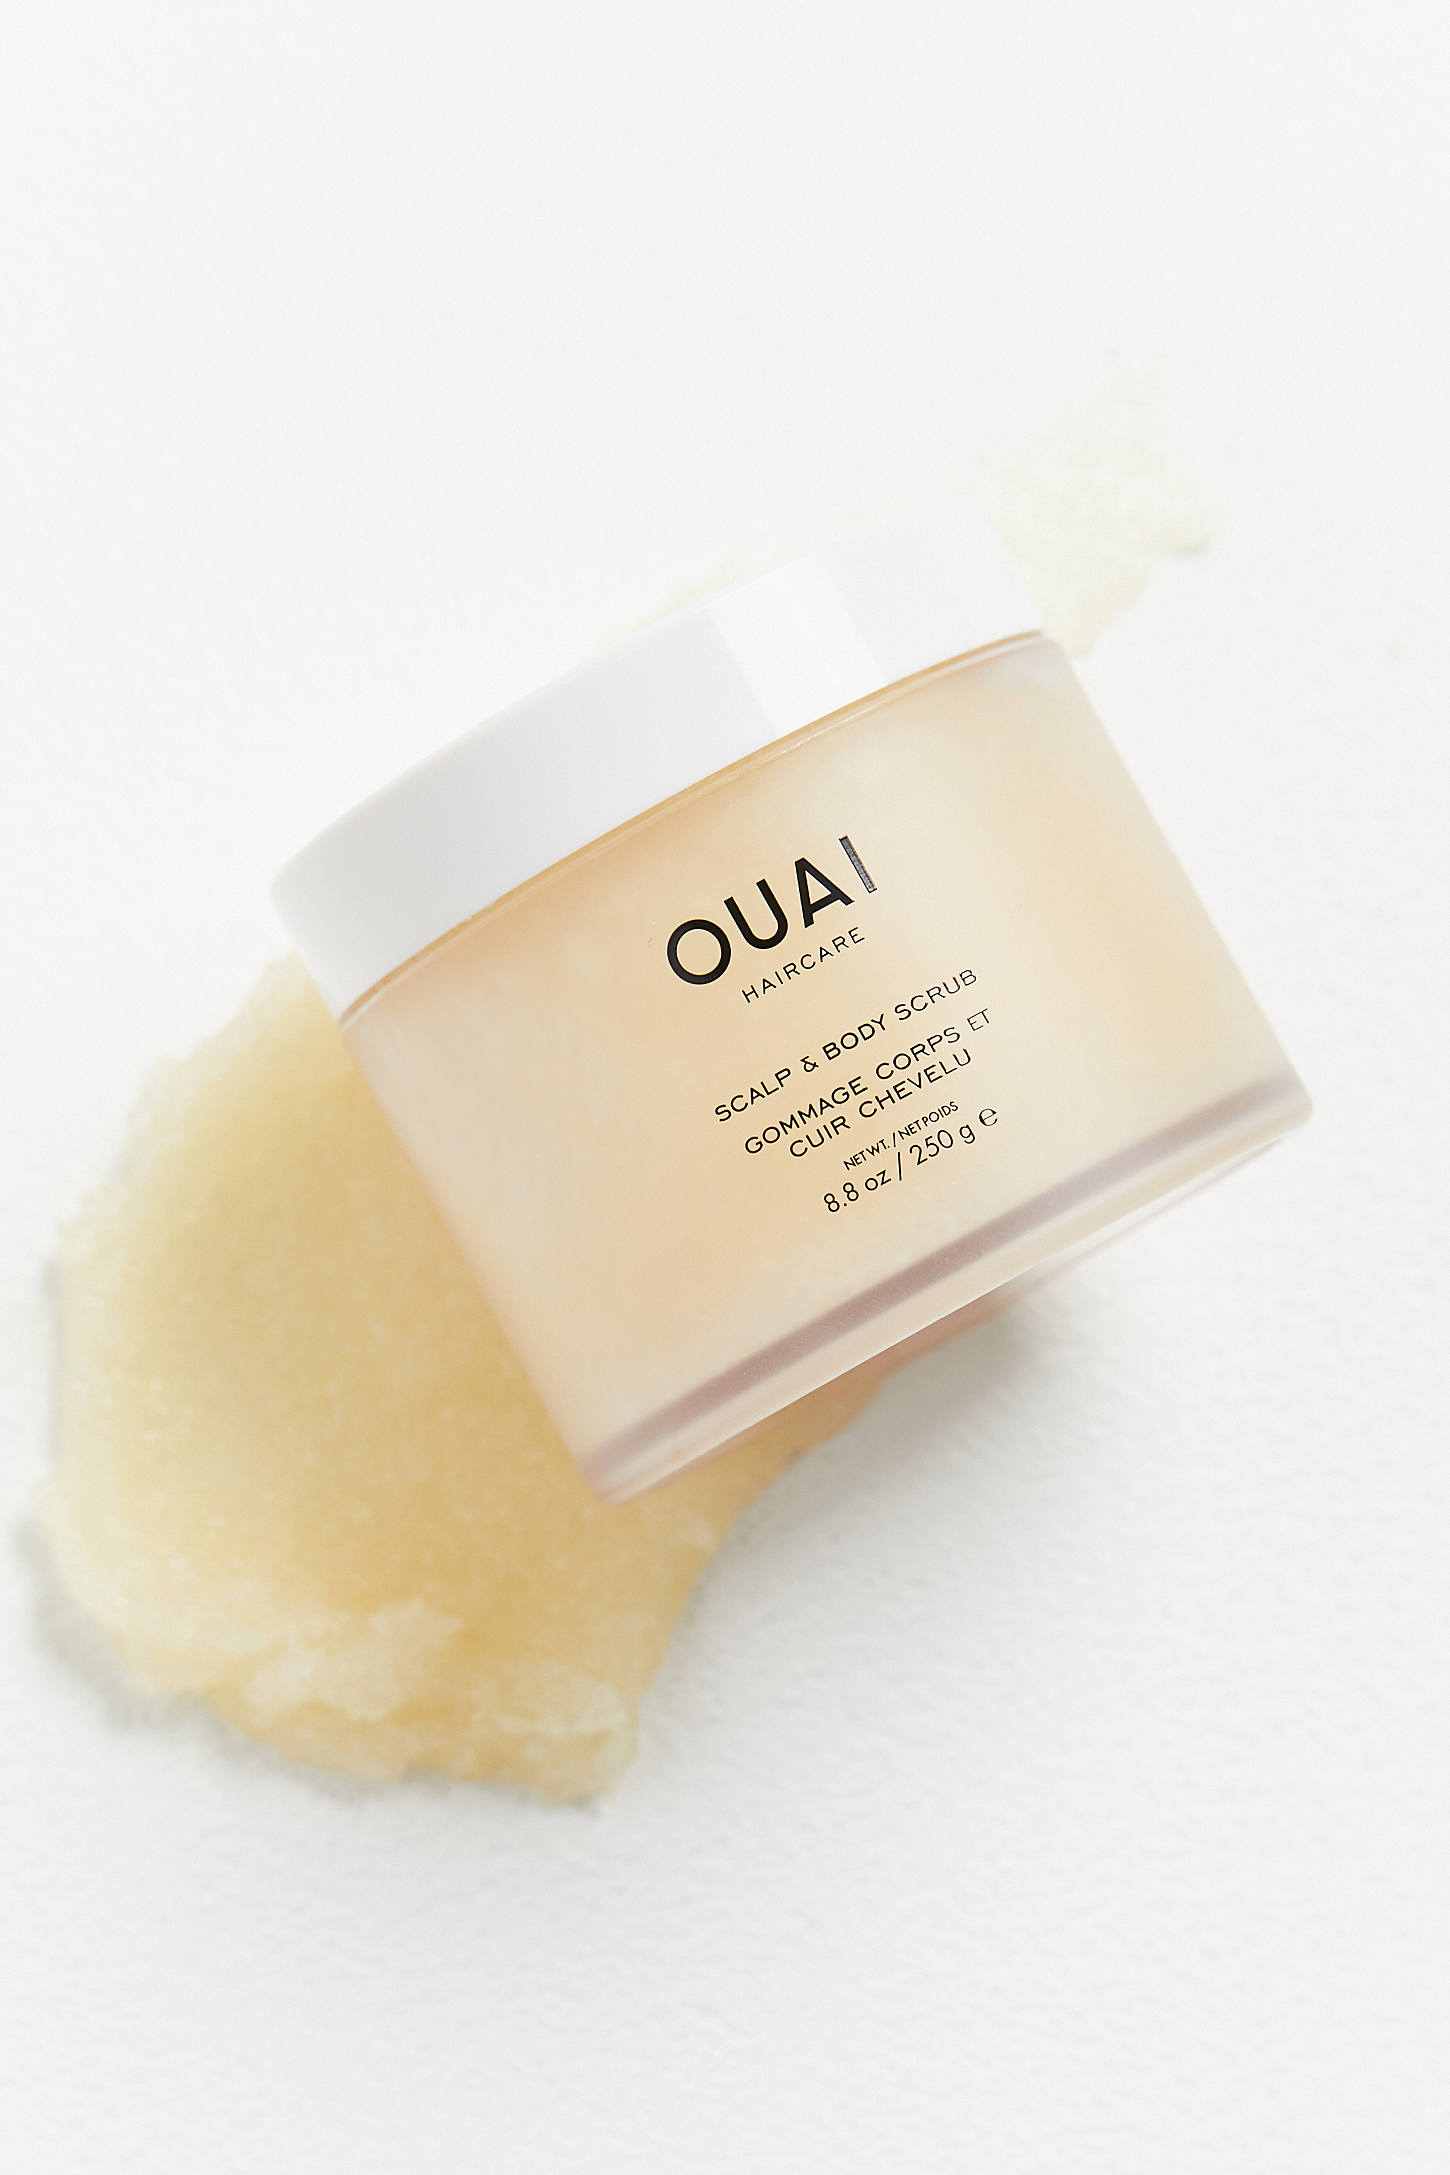 OUAI - Scalp & Body Scrub